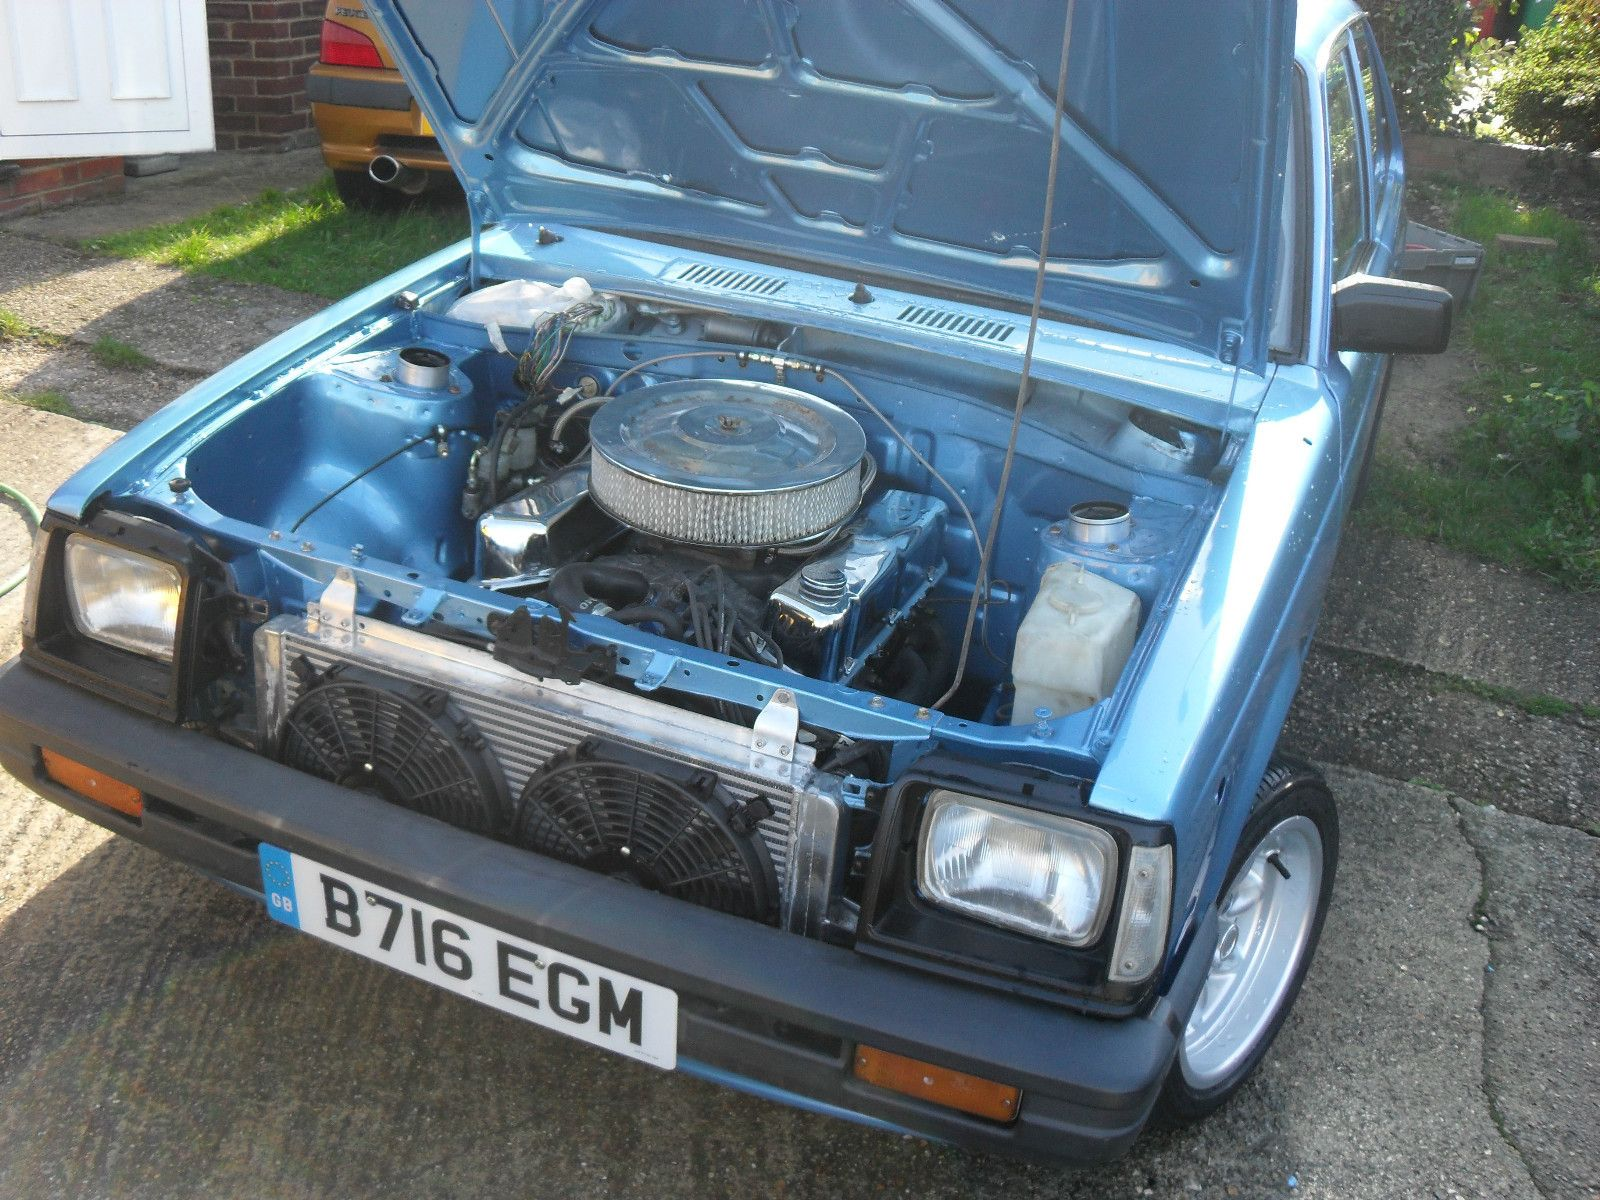 Gentil Toyota Starlet KP60 With 4.0L Range Rover Carbu0027d V8 On EBay